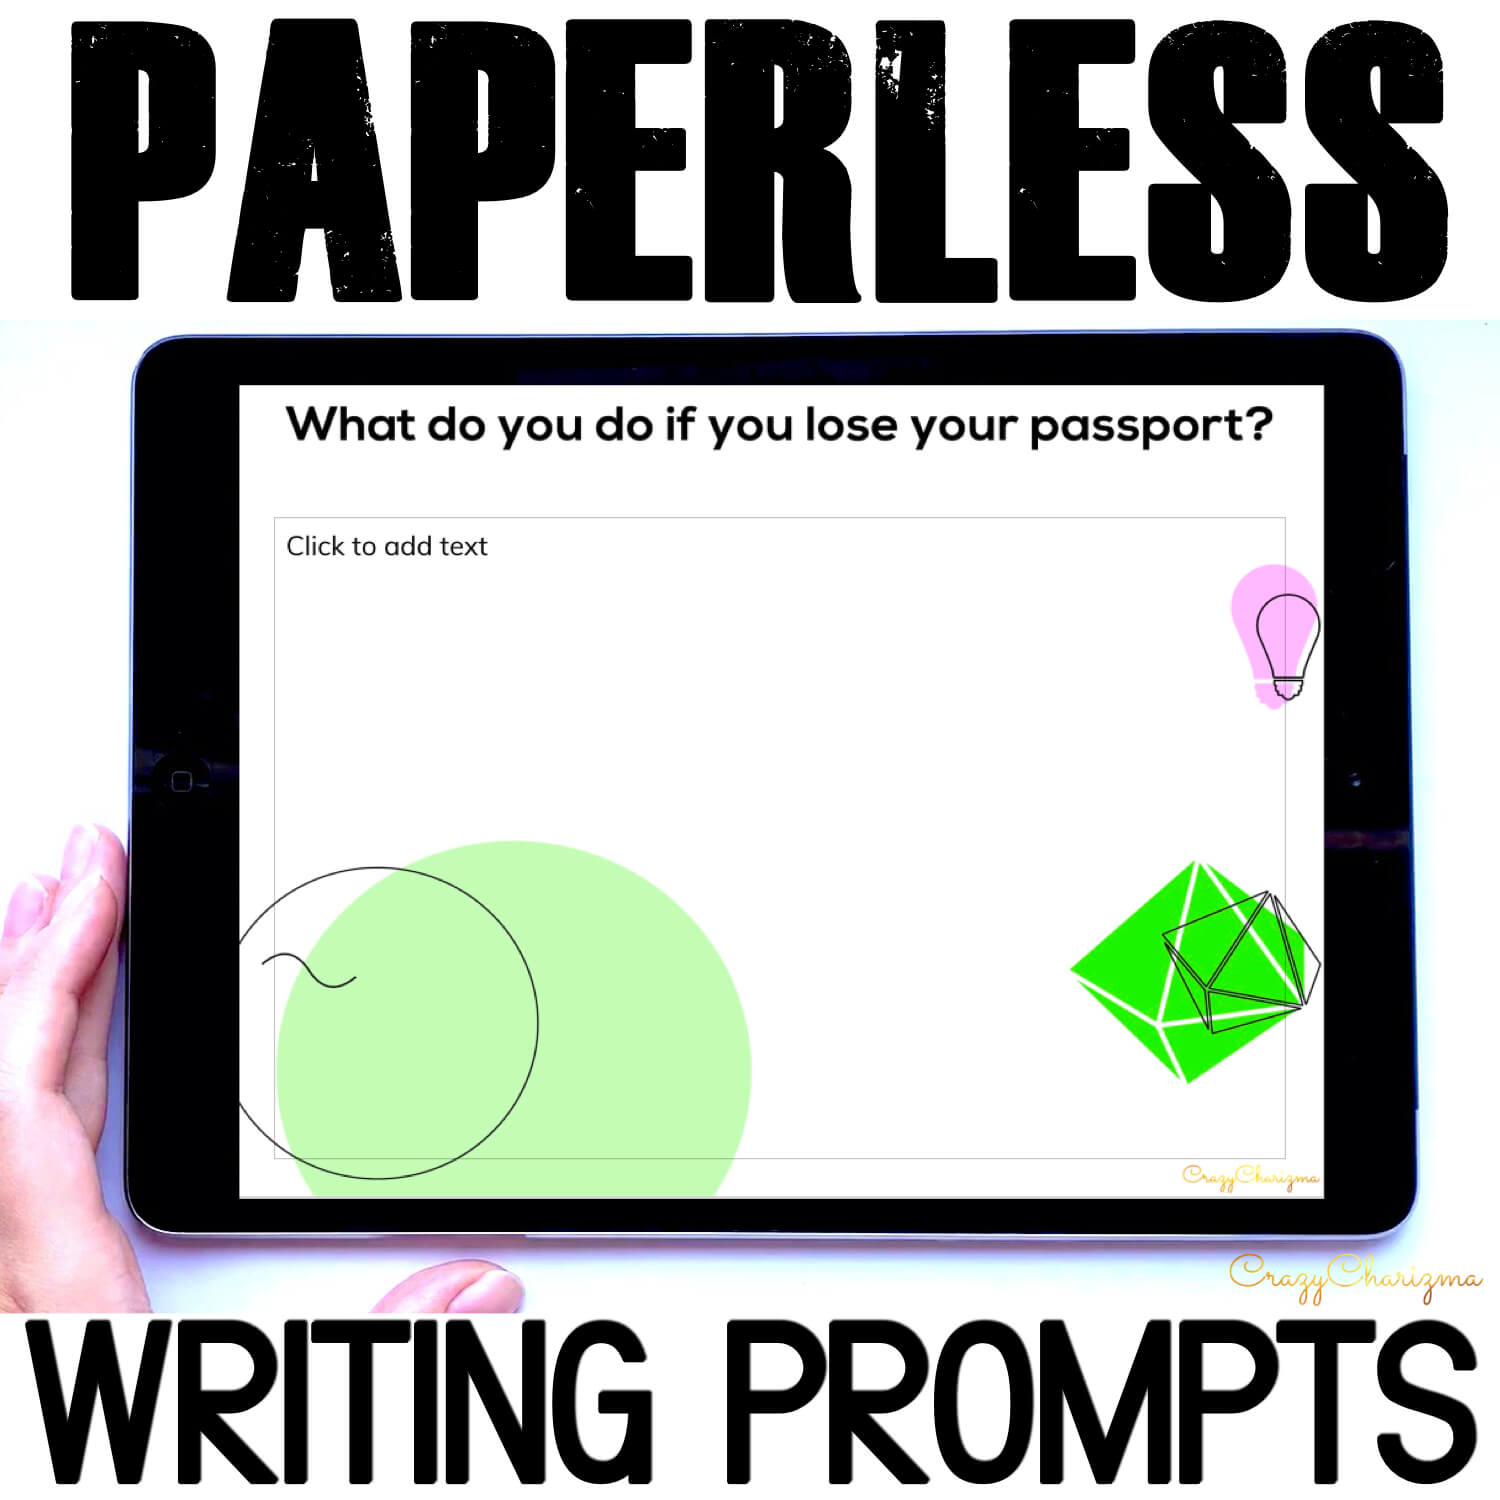 Need fun writing prompts for distance learning? Improve and inspire your students with writing and engaging CONDITIONALS practice. The prompts can be used as Writing Centers, as well as with teens and adults during ESL lessons. Practice conditionals type 1, type 2, type 3, and mixed types in a meaningful way!